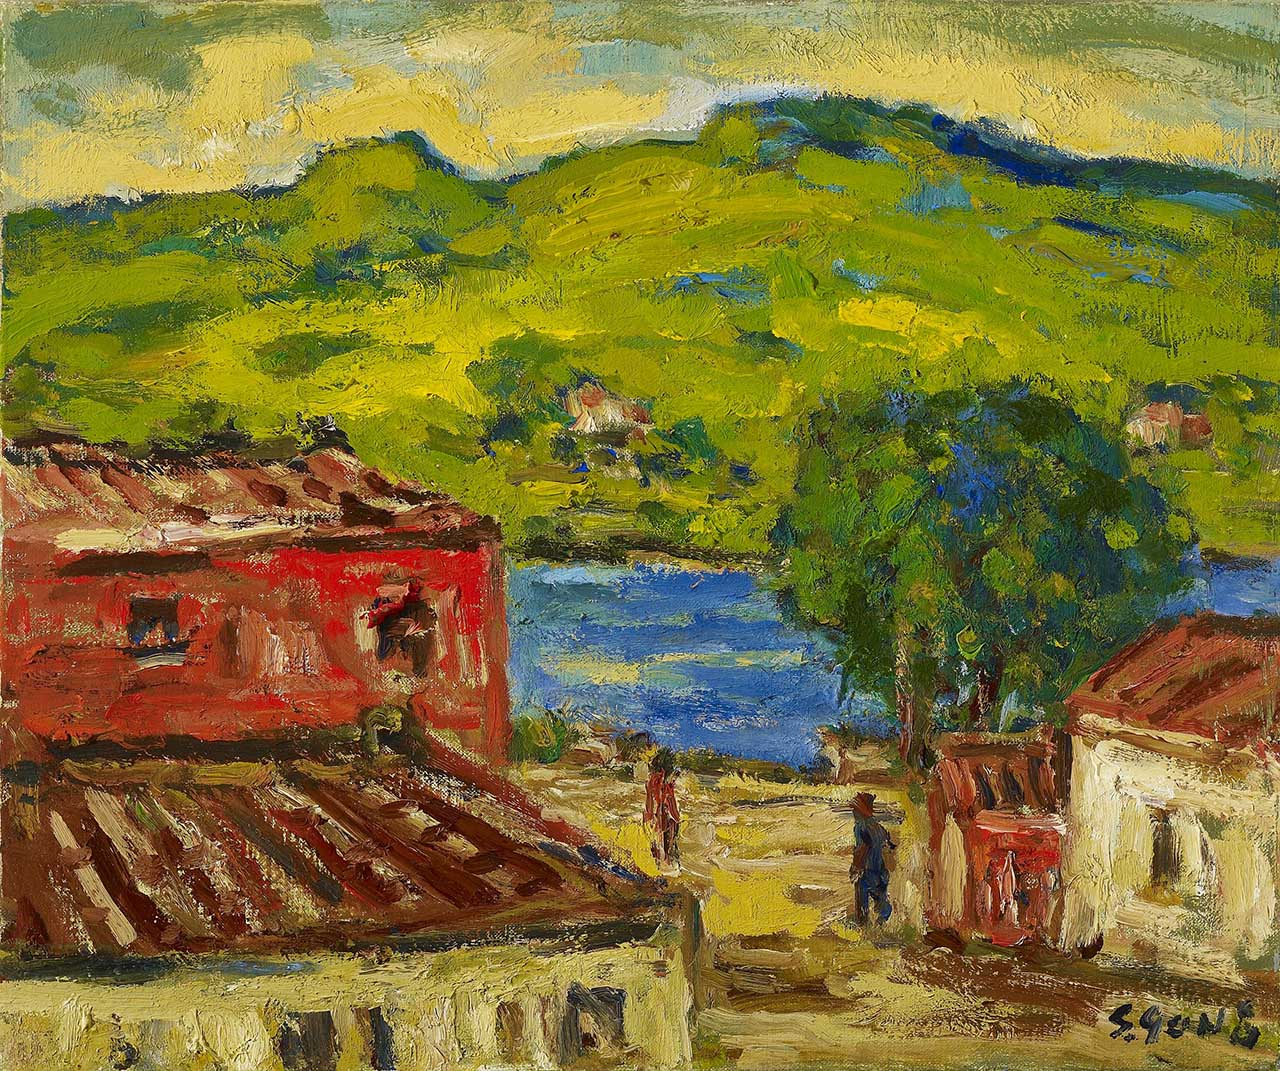 Tamkang Oil on canvas 38x45 cm